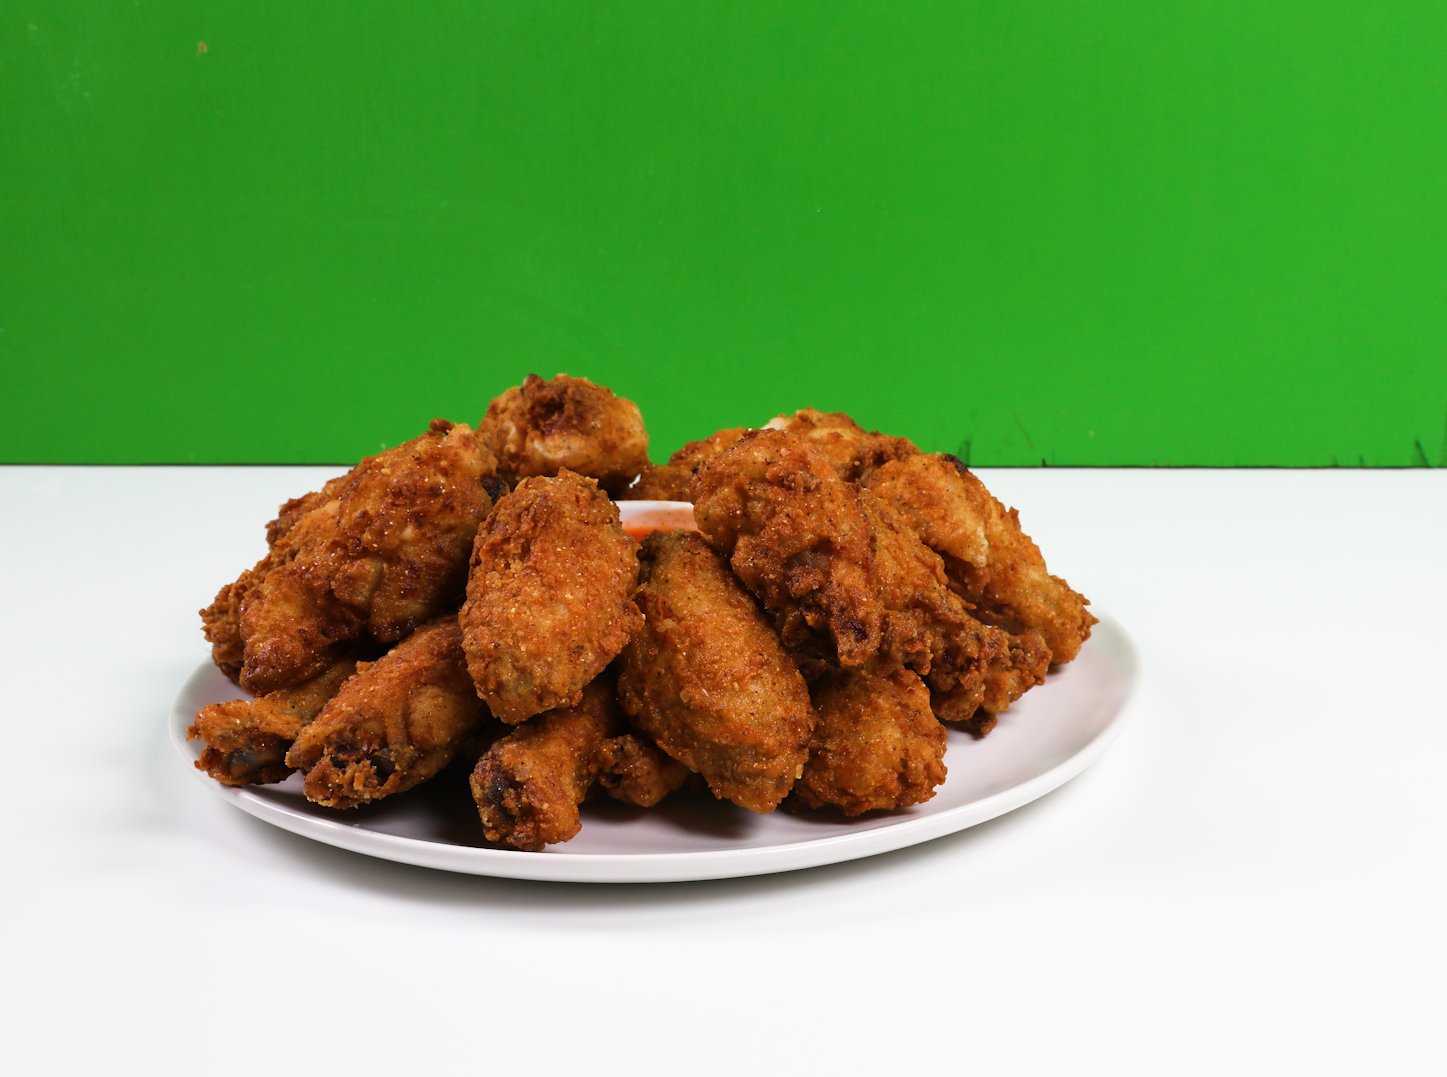 You can order wings created by Snoop Dogg and Shaq on National Wing Day